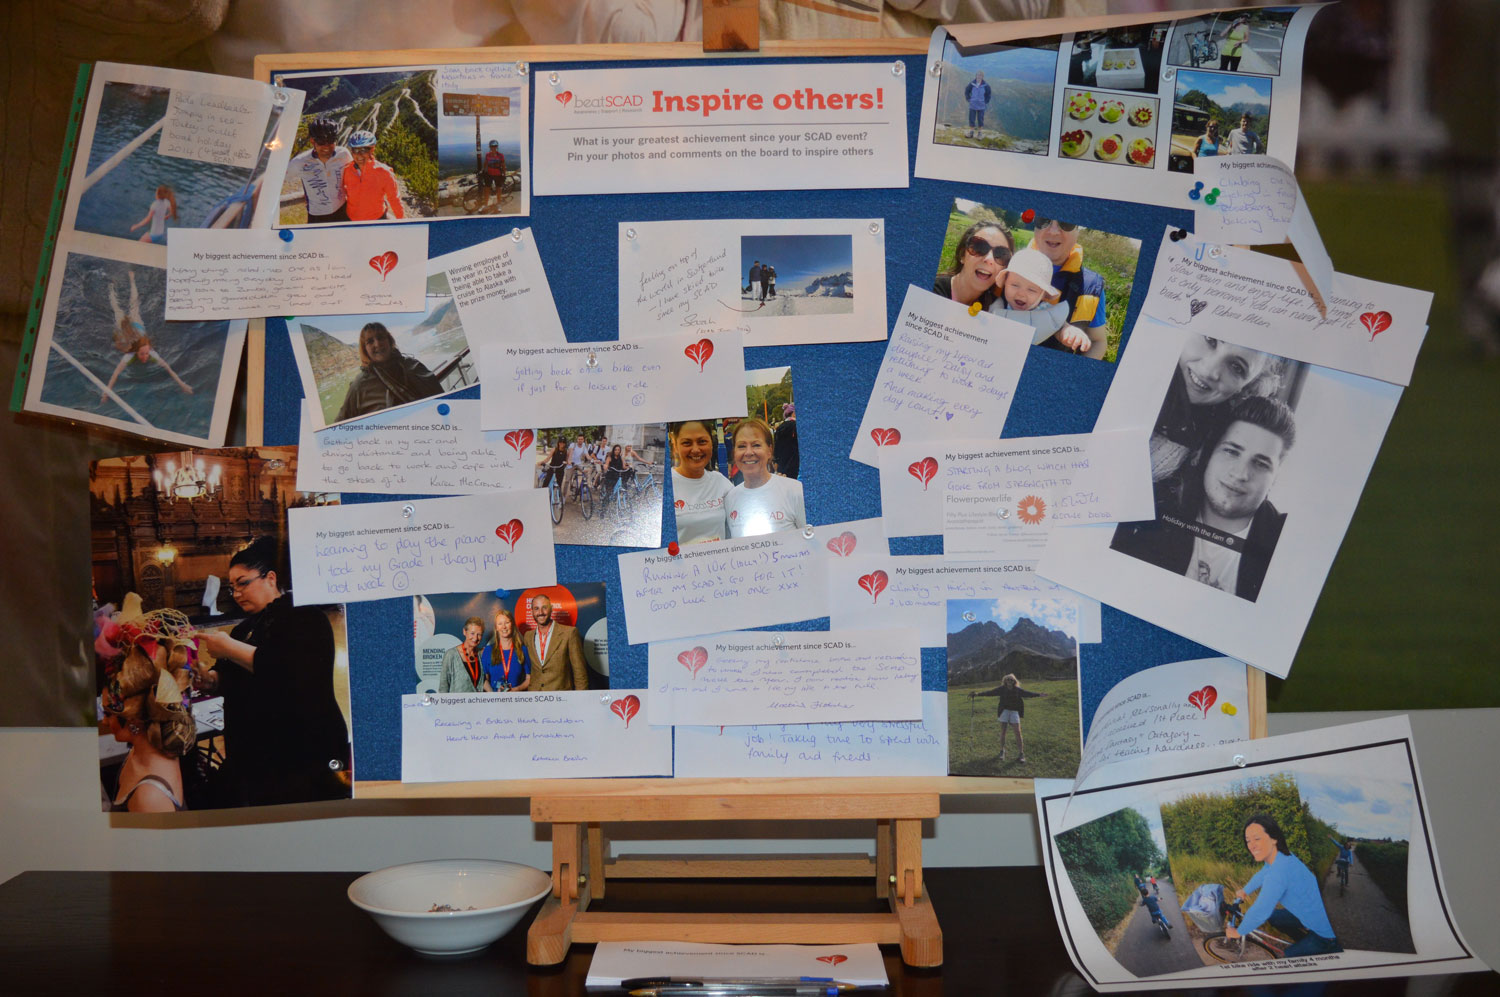 SCAD patients inspired others by posting their achievements on our Inspiration Board